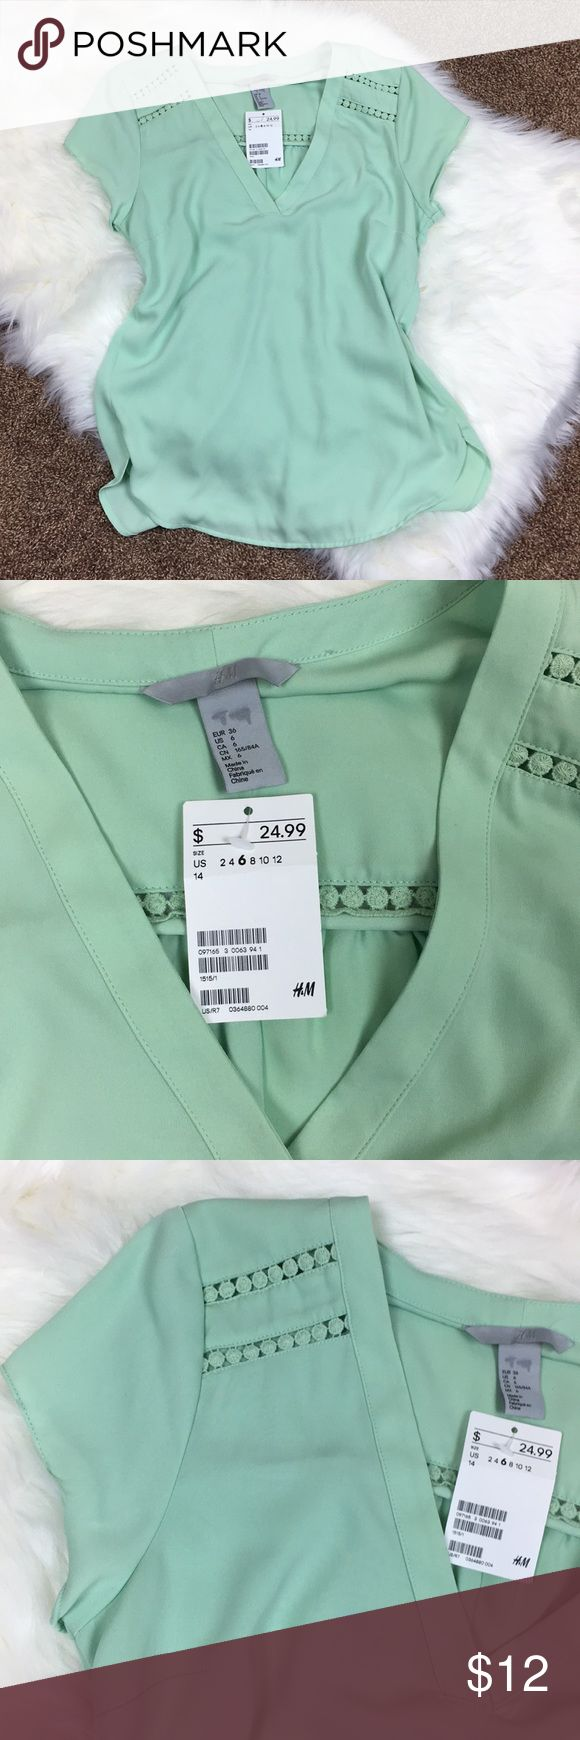 NWT H&M Mint Blouse H&M Mint Blouse Darts and Lace Detail = Classy Must Have Size 6 Sharpie Marker on Inner Size Label as Shown in Picture H&M Tops Blouses